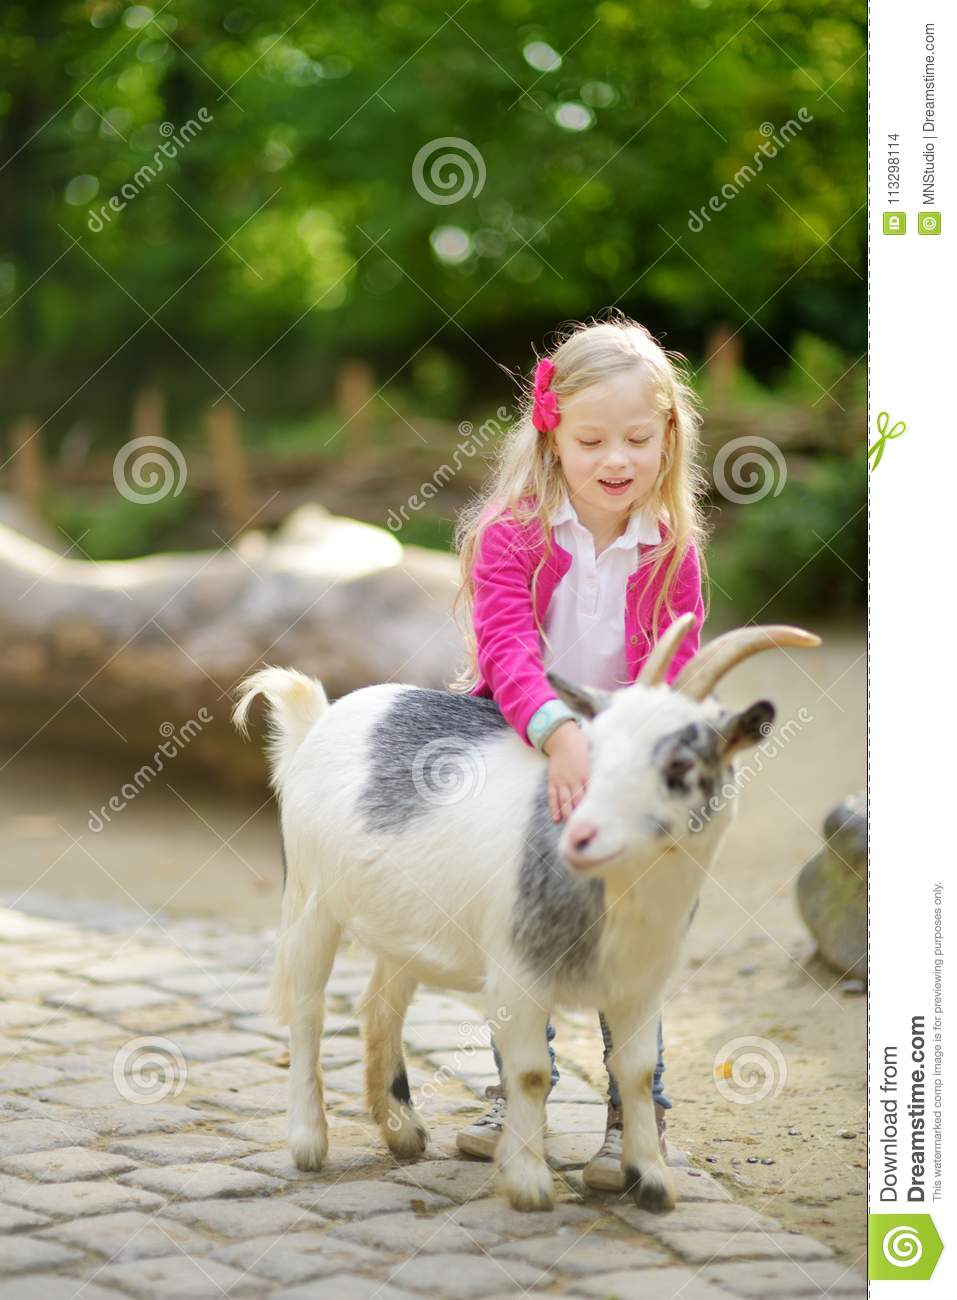 Cute Little Girl Petting And Feeding A Goat At Petting Zoo